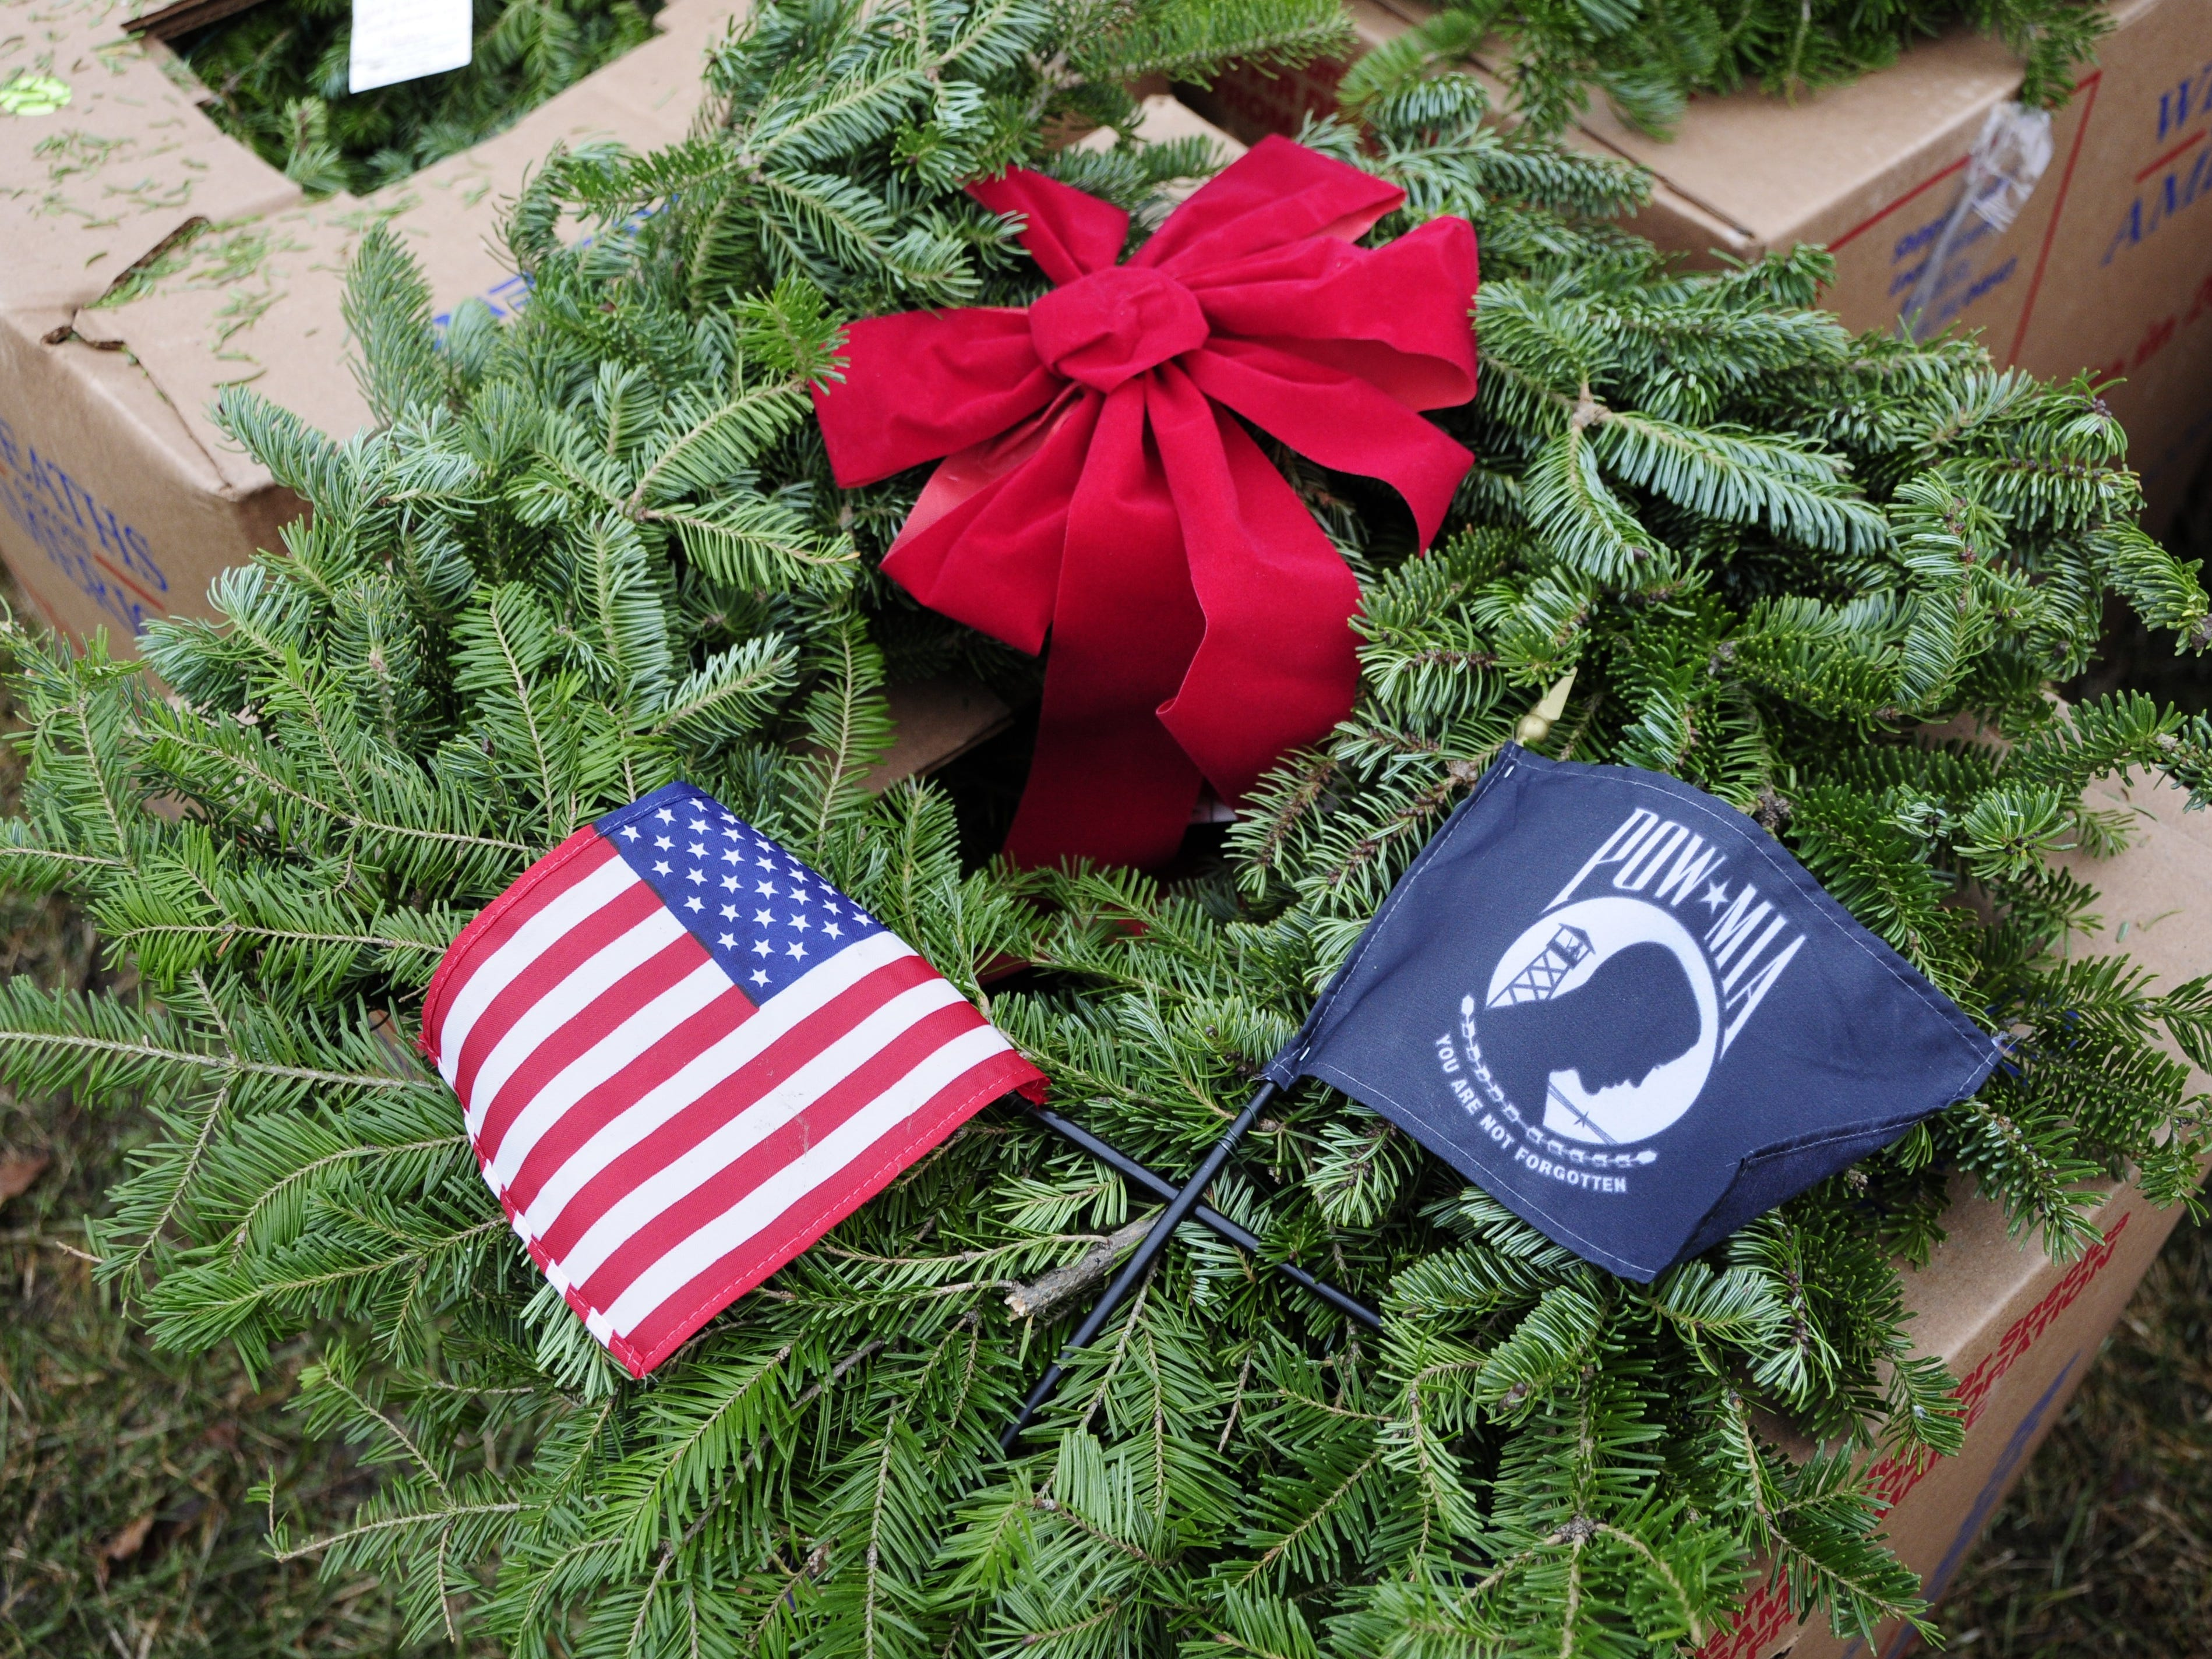 Volunteers placed 889 wreaths during the Wreaths Across America event on Saturday, Dec. 15, 2018 at the St. Clair County Allied Veterans Cemetery.